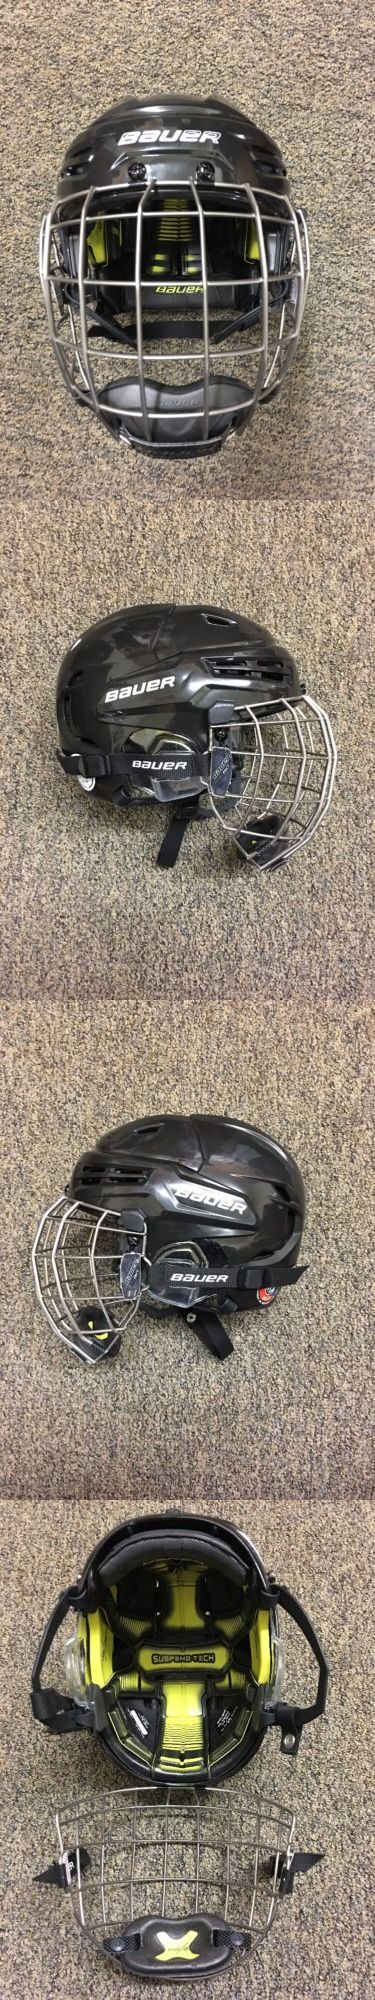 Helmets 20854: Bauer Re-Akt Hockey Helmet Combo Black Size Small *New* Rodeo Bull Mutton Buster -> BUY IT NOW ONLY: $249.99 on eBay!